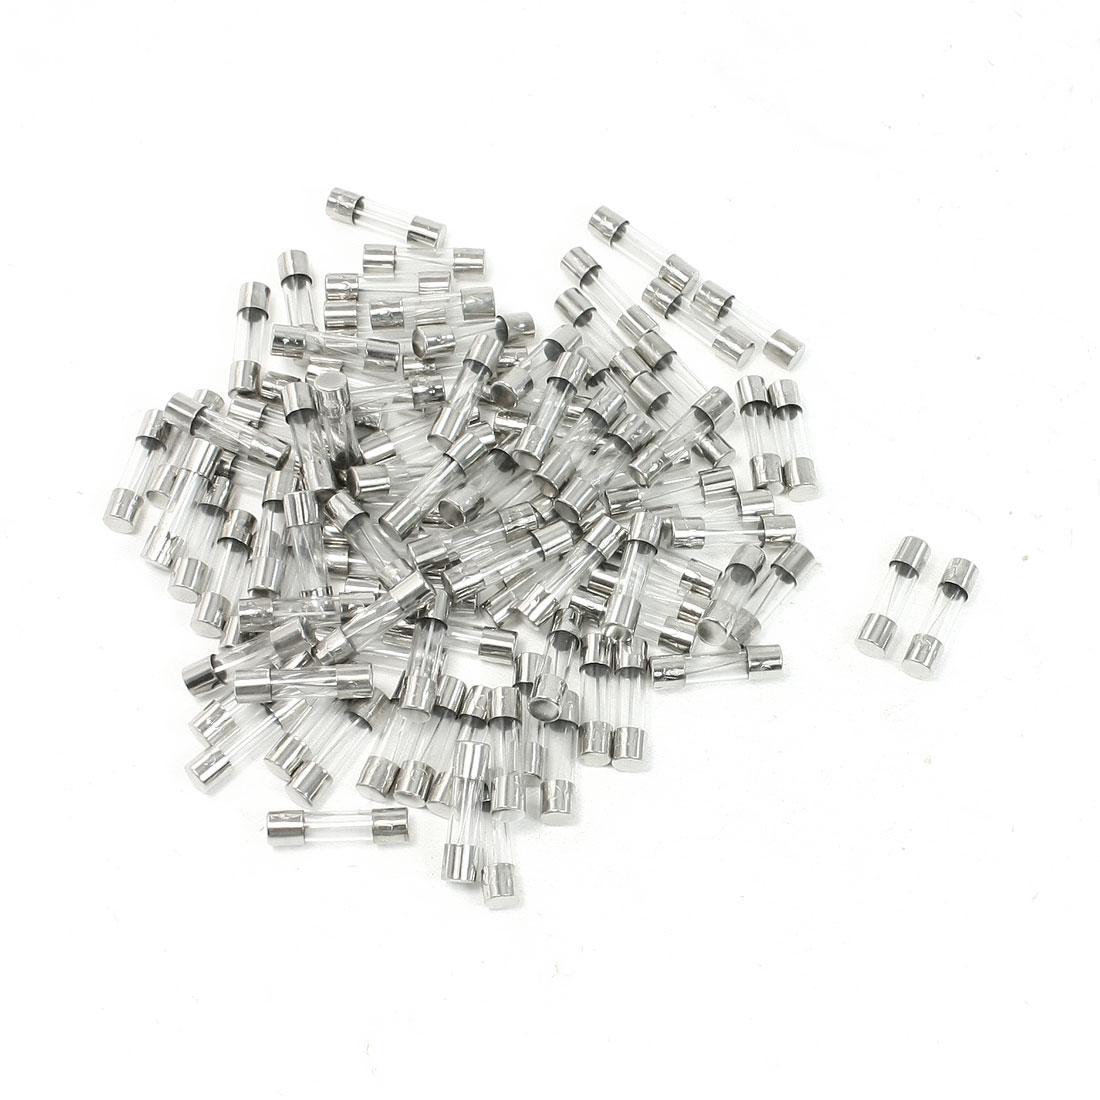 15A 250V 5mm x 20mm Fast Blow Glass Tube Fuses 100 Pieces